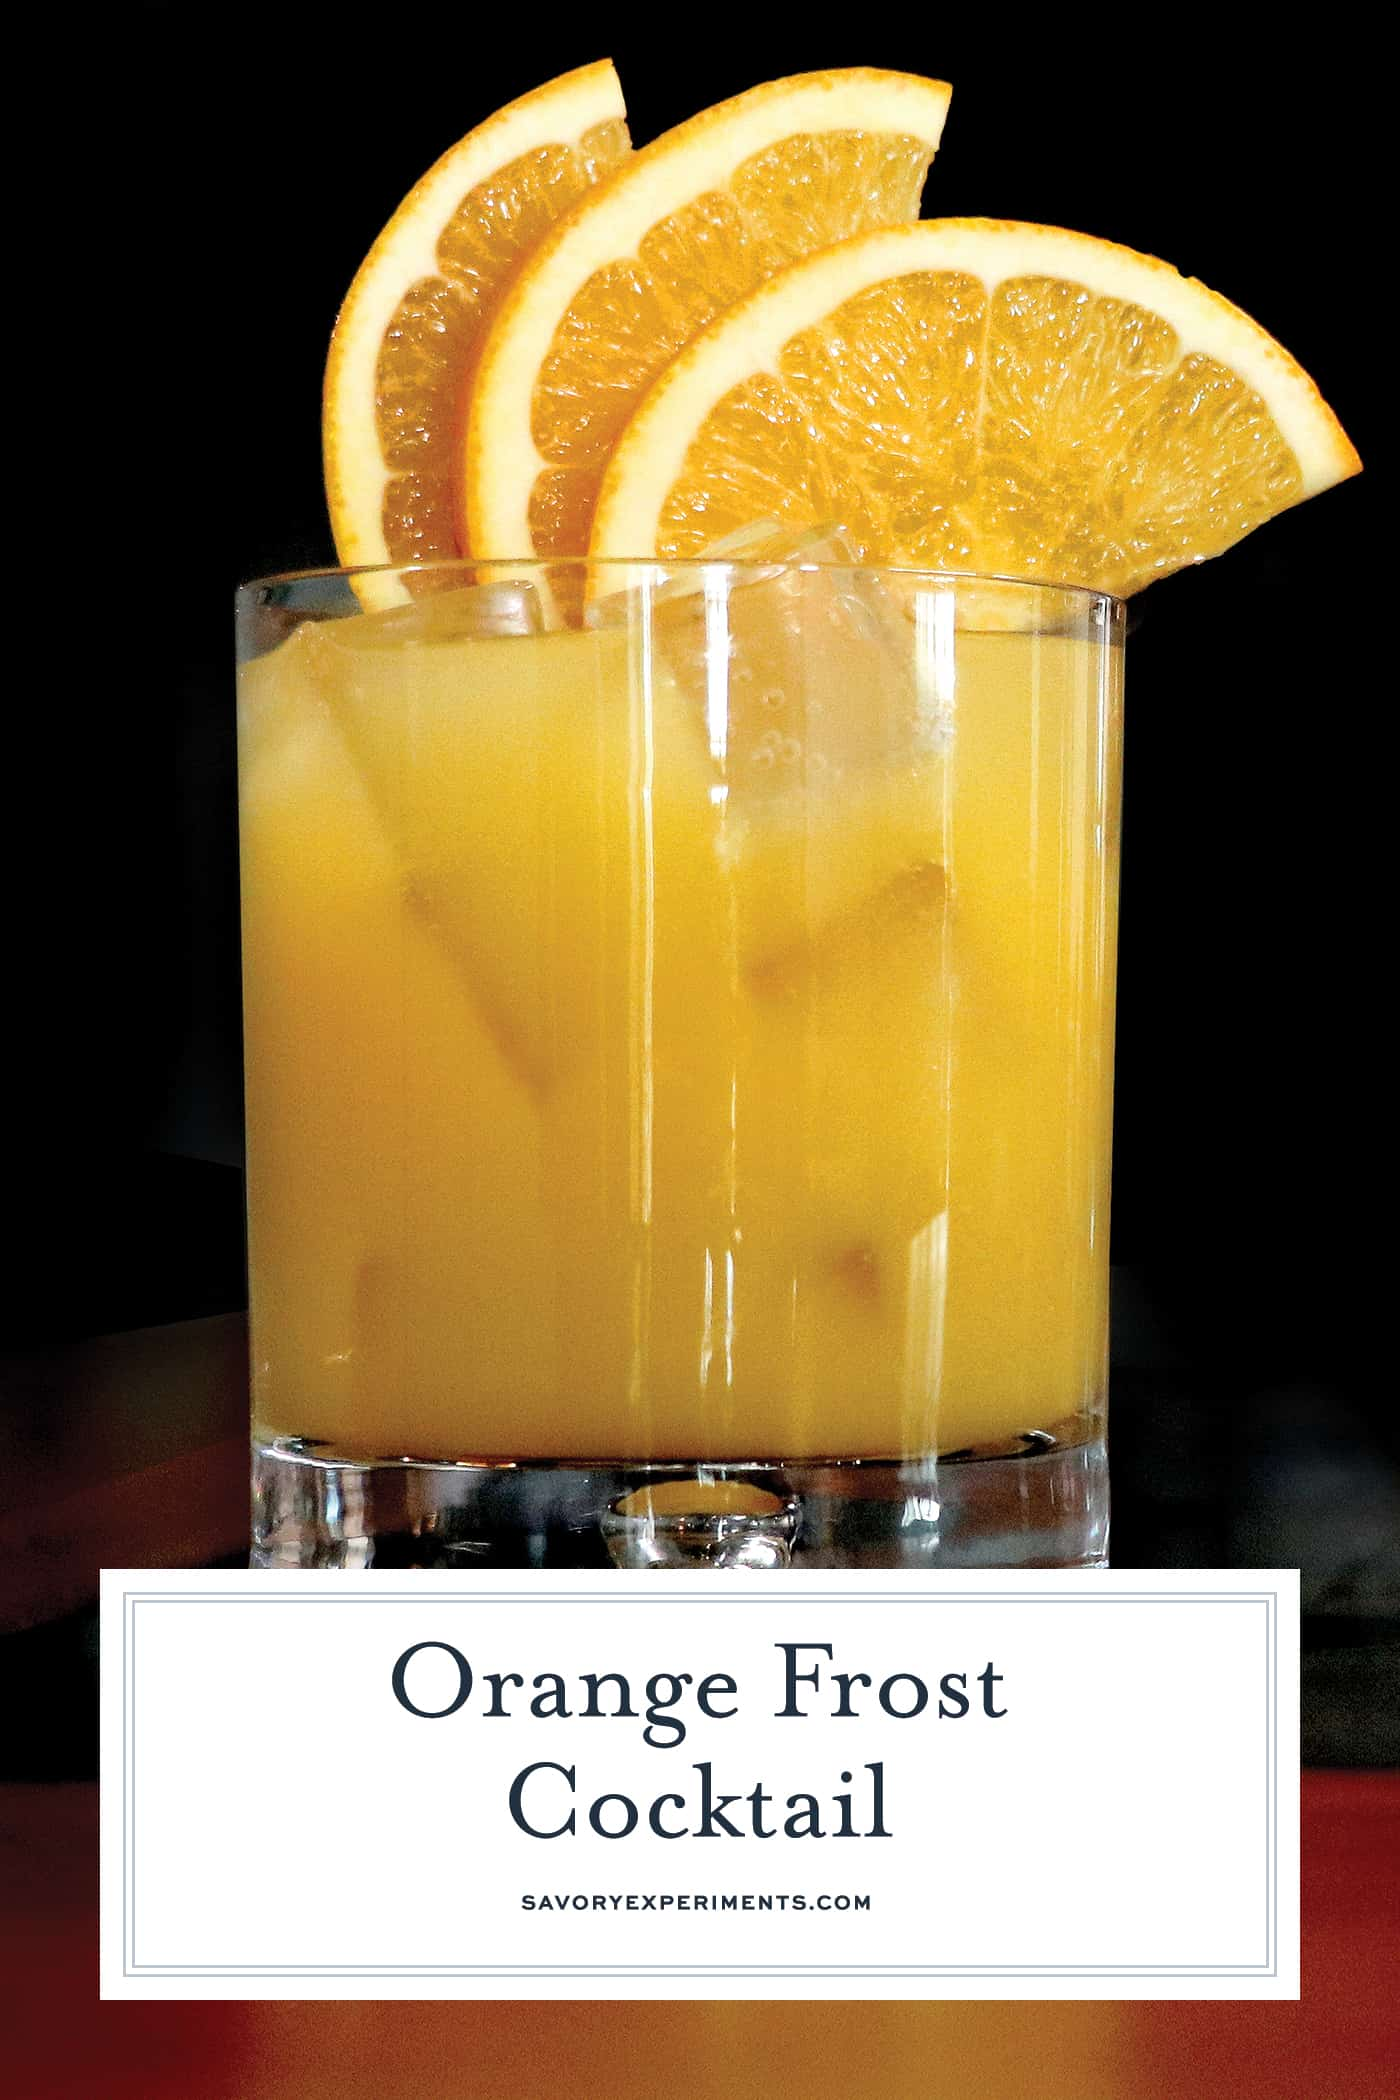 Orange Frost Cocktail is a refreshing and festive holiday cocktail using whiskey, lemon and orange juice and maple syrup. Make this your holiday party cocktail! #whiskeycocktails www.savoryexperiments.com